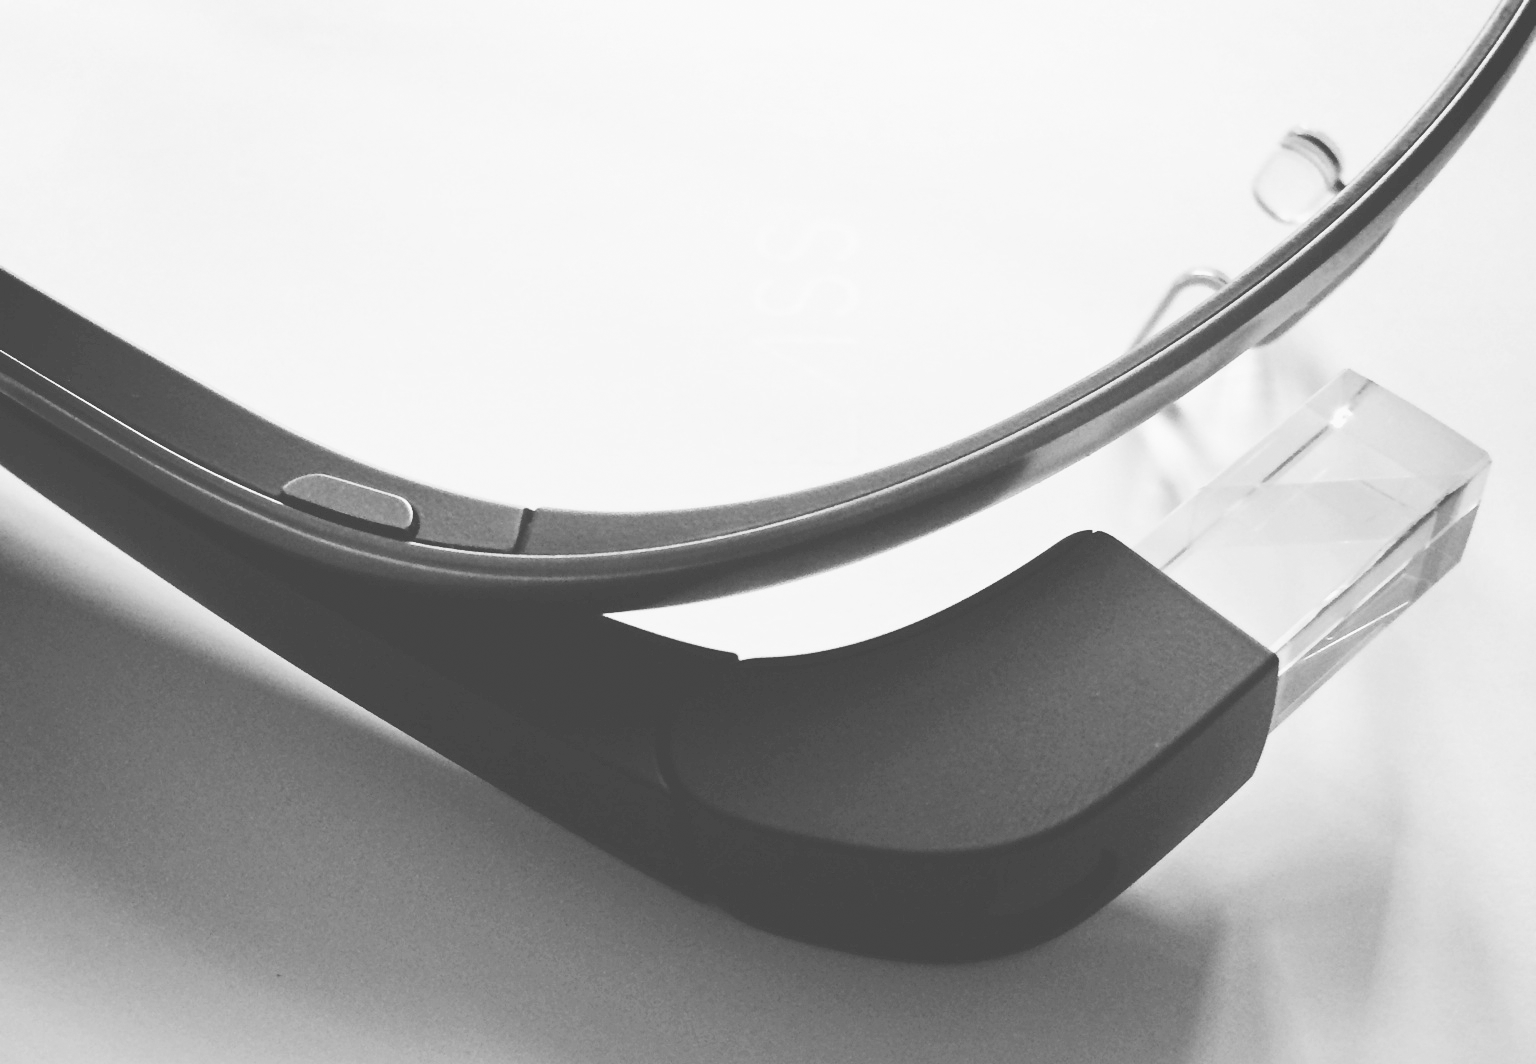 Hands on Google Glass. Expect a blog post soon.